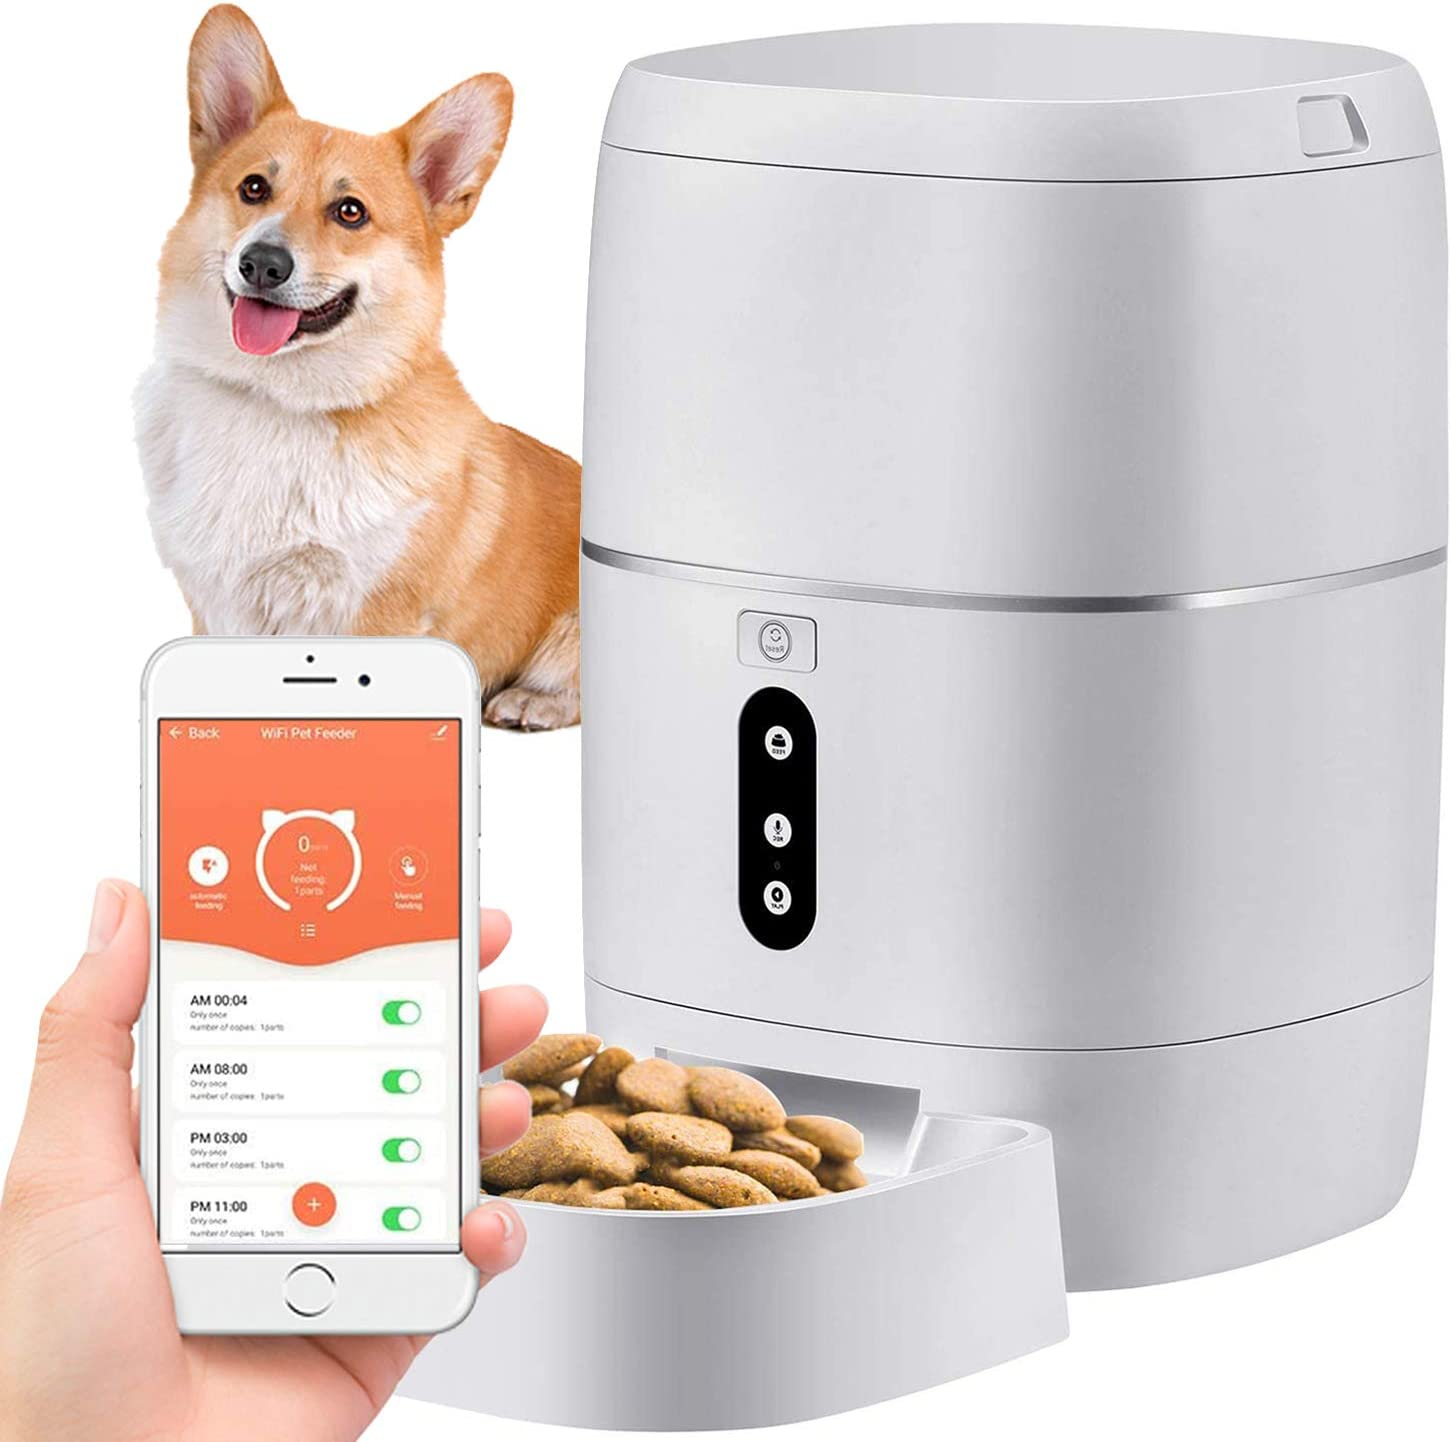 Yakry X12 WiFi Smart Feeder 6L Automatic Cat Feeder Automatic Dog Feeder Food Dispenser App Control with Voice Recorder, Dual-Power and 6 Meals Programmable Timer for Android/iOS